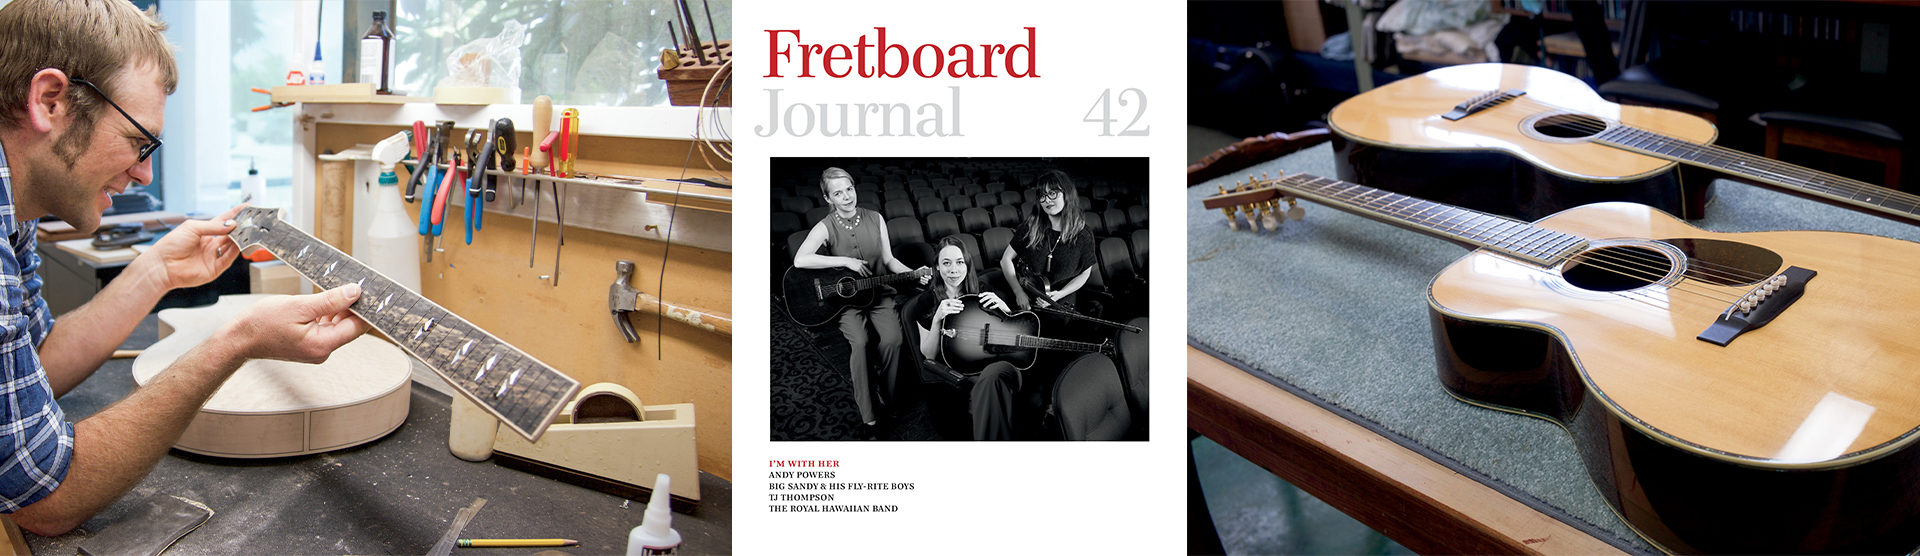 Fretboard Journal | The official home of the Fretboard Journal magazine